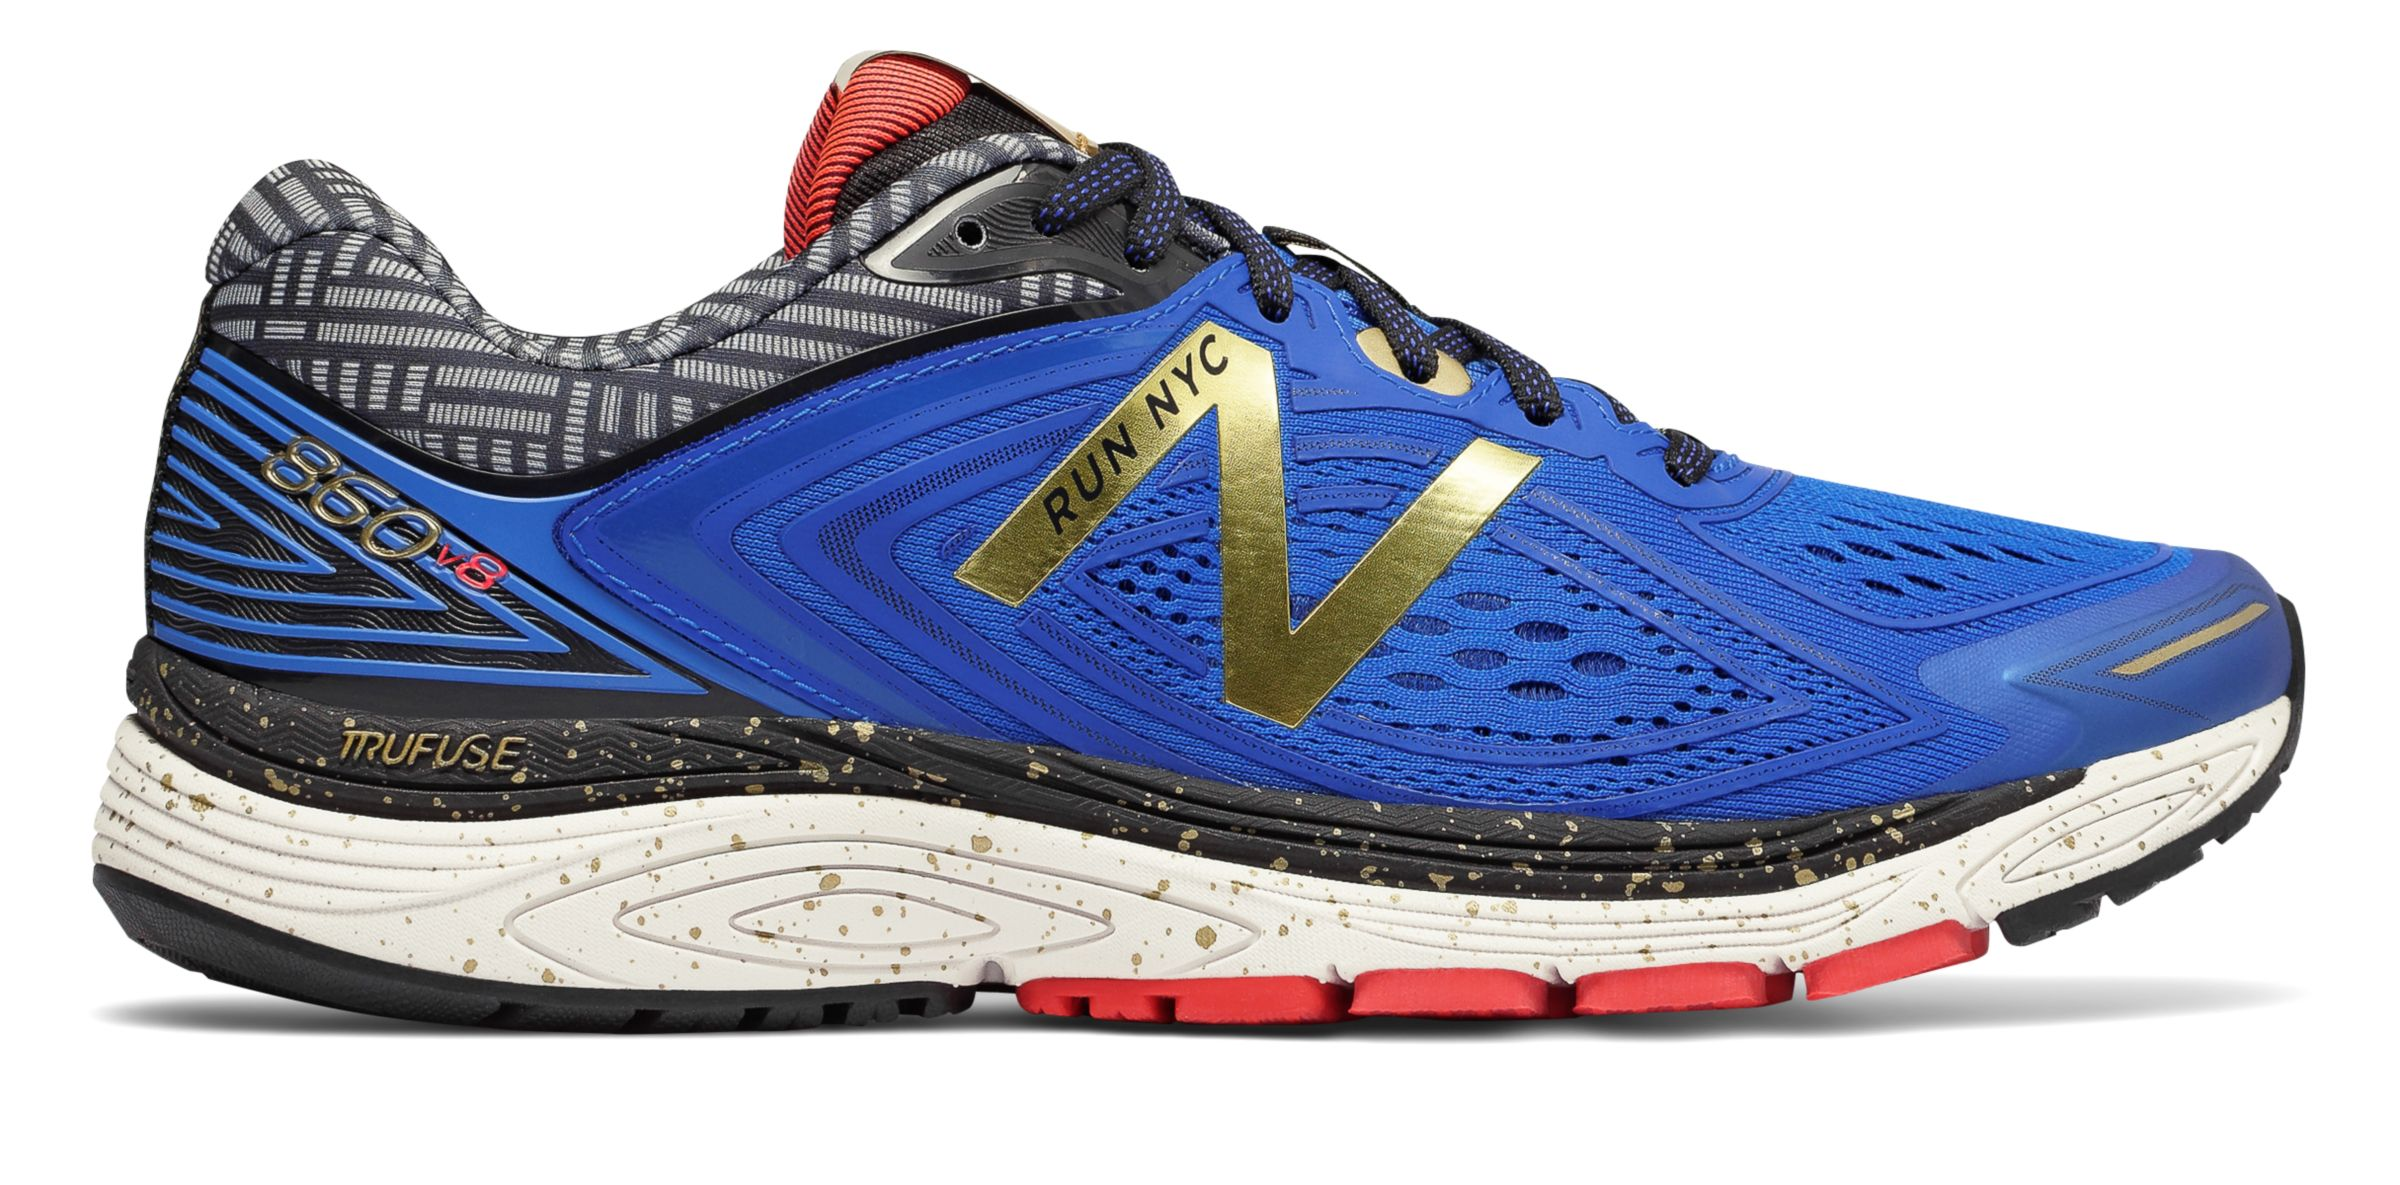 Details about New Balance Men's 860V8 Nyc Marathon Trufuse Midsole Shoes Blue With Gold